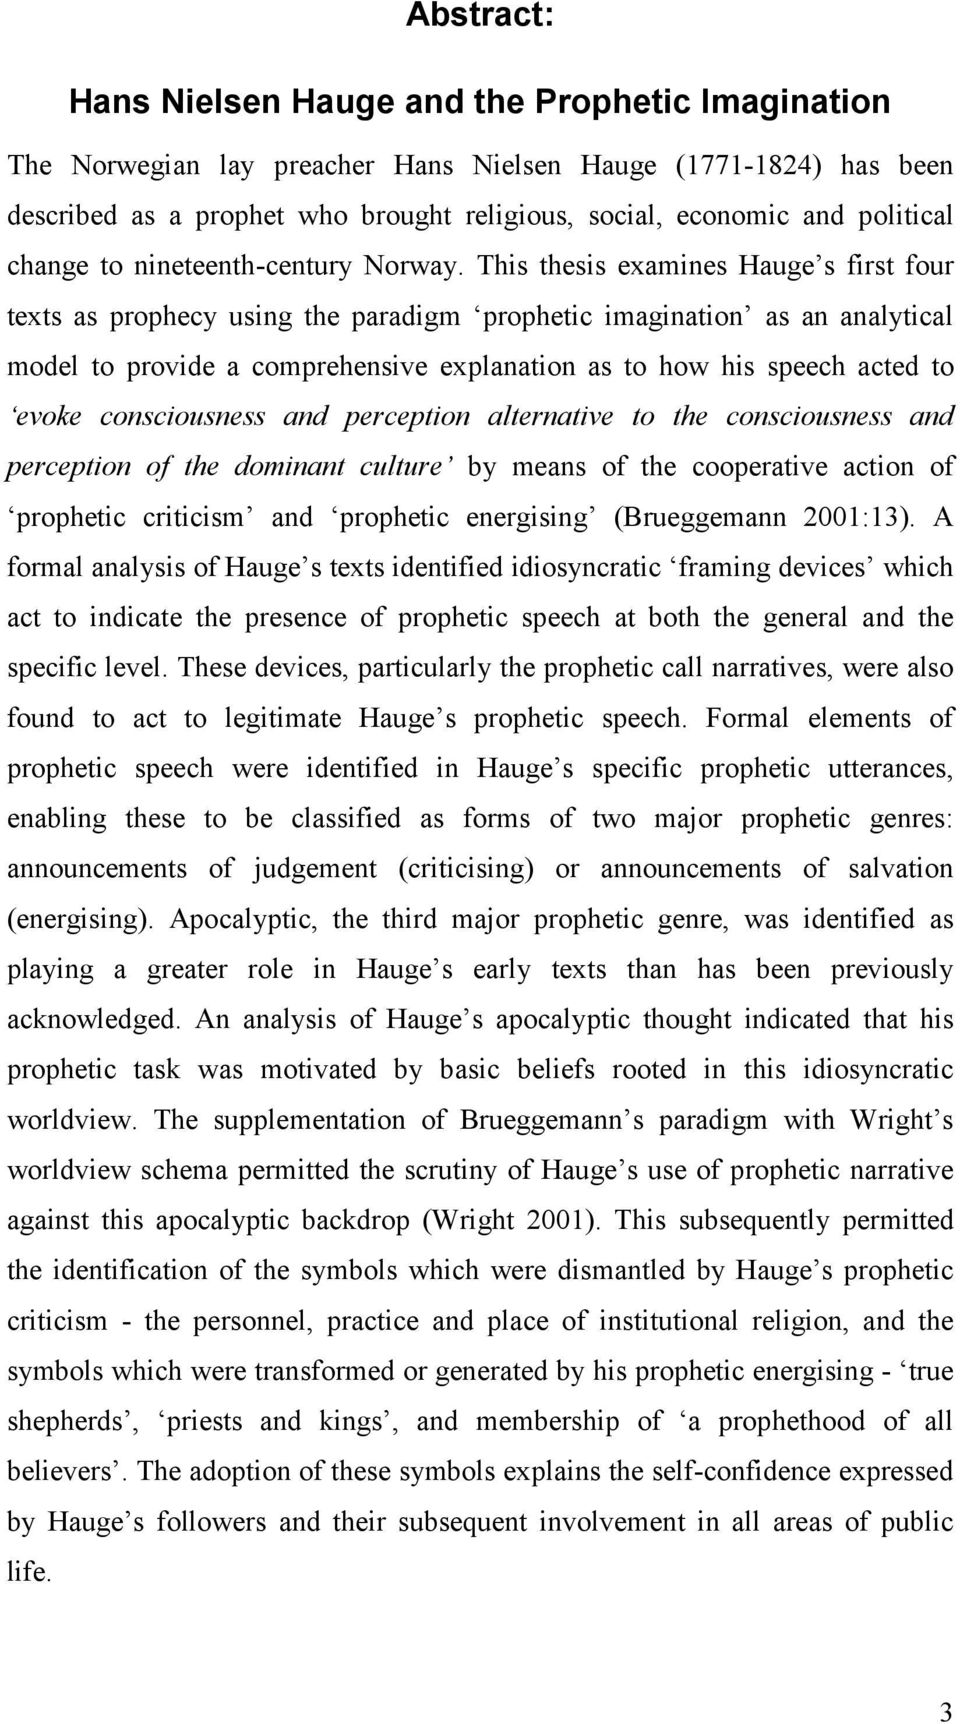 This thesis examines Hauge s first four texts as prophecy using the paradigm prophetic imagination as an analytical model to provide a comprehensive explanation as to how his speech acted to evoke